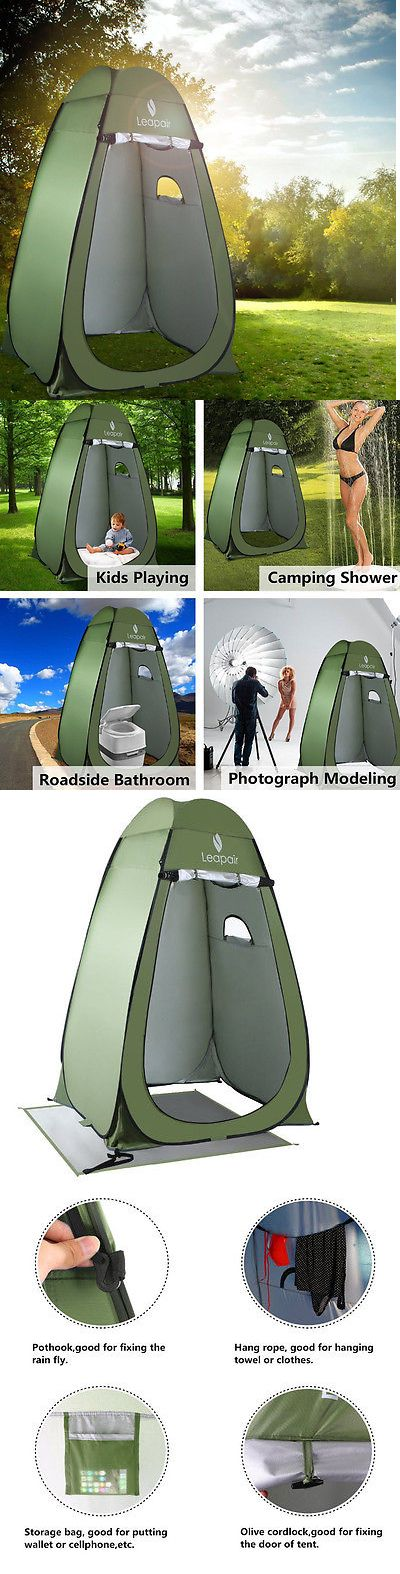 Portable Showers and Accessories 181396: Shower Tent Camping Portable Toilet Cover Lightweight Pop Up Privacy Hiking BUY IT NOW ONLY: $69.95